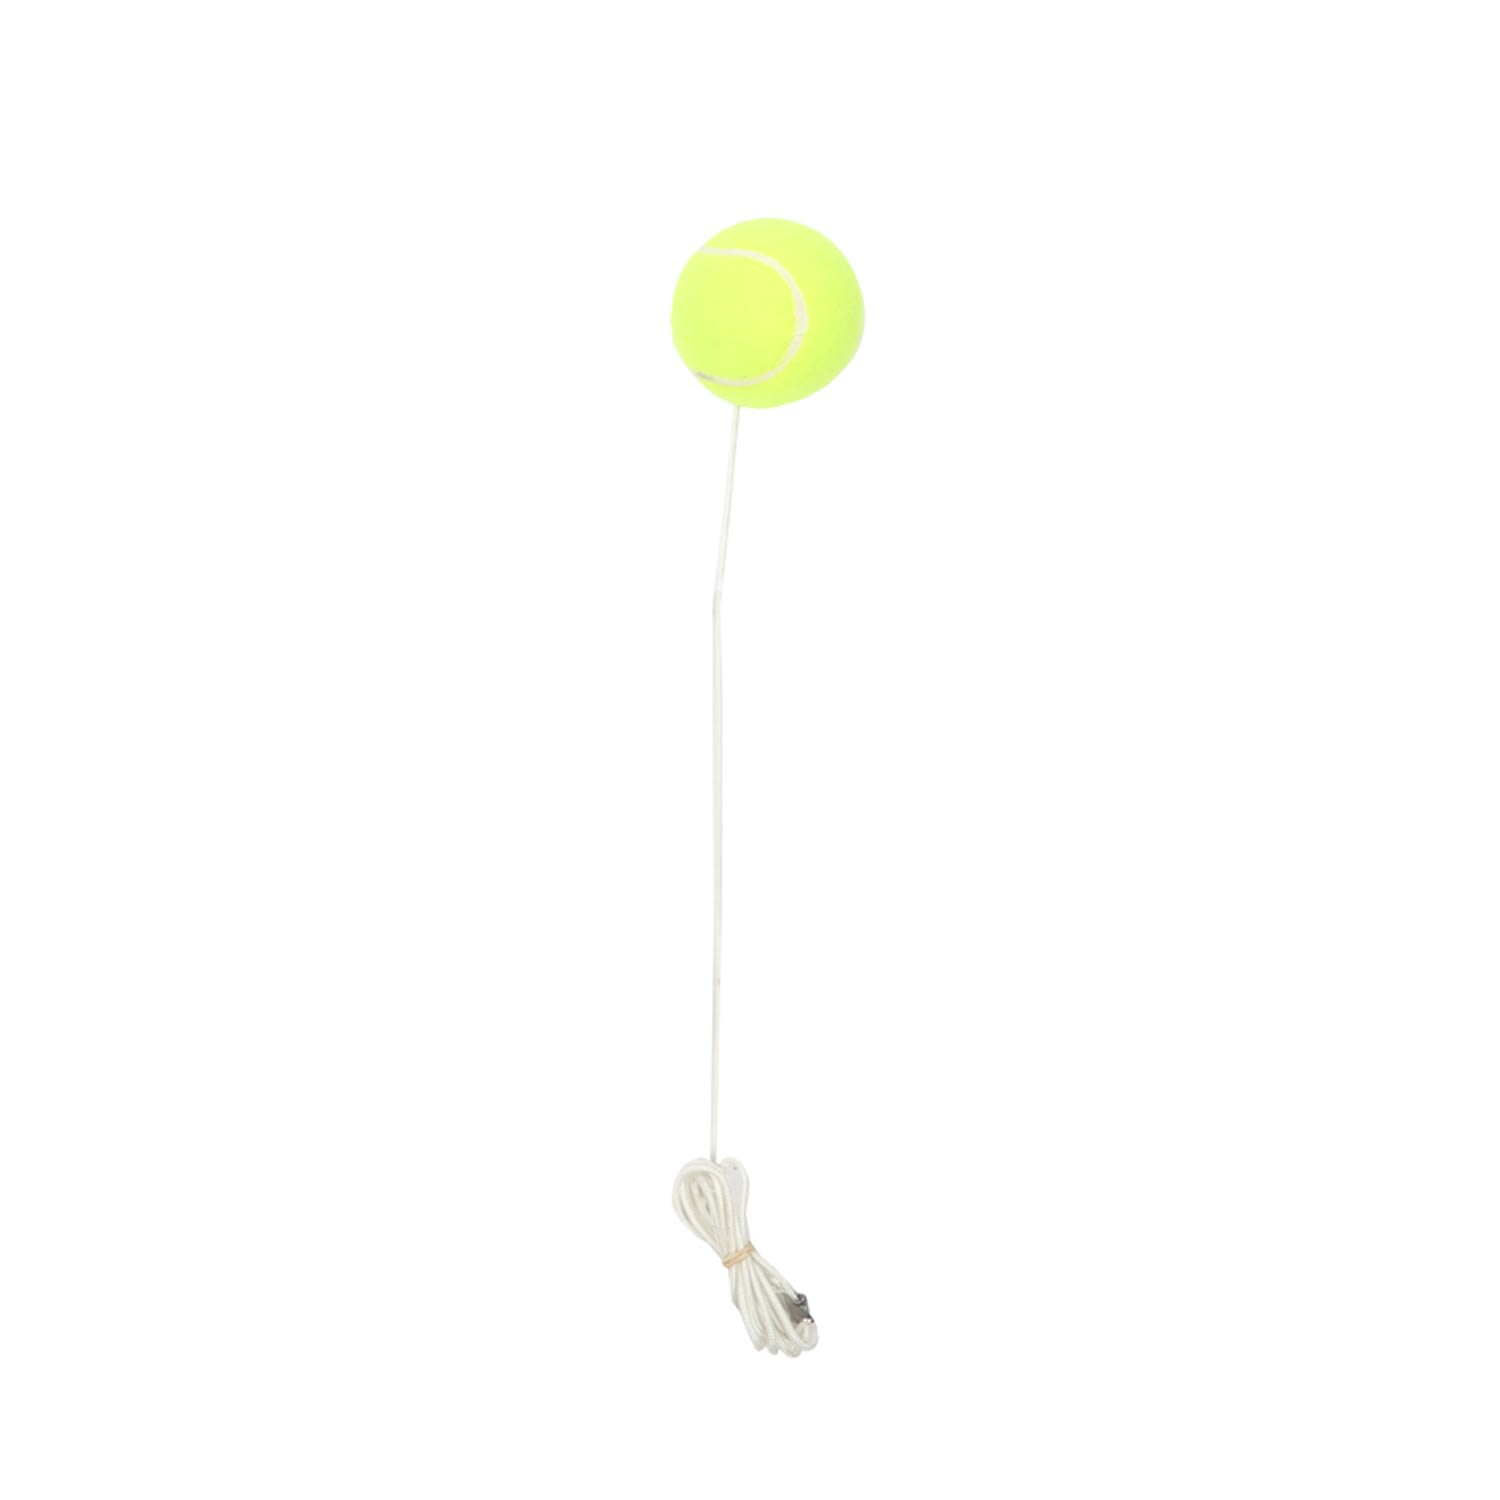 Dunlop Swingball Spare Ball & Trace